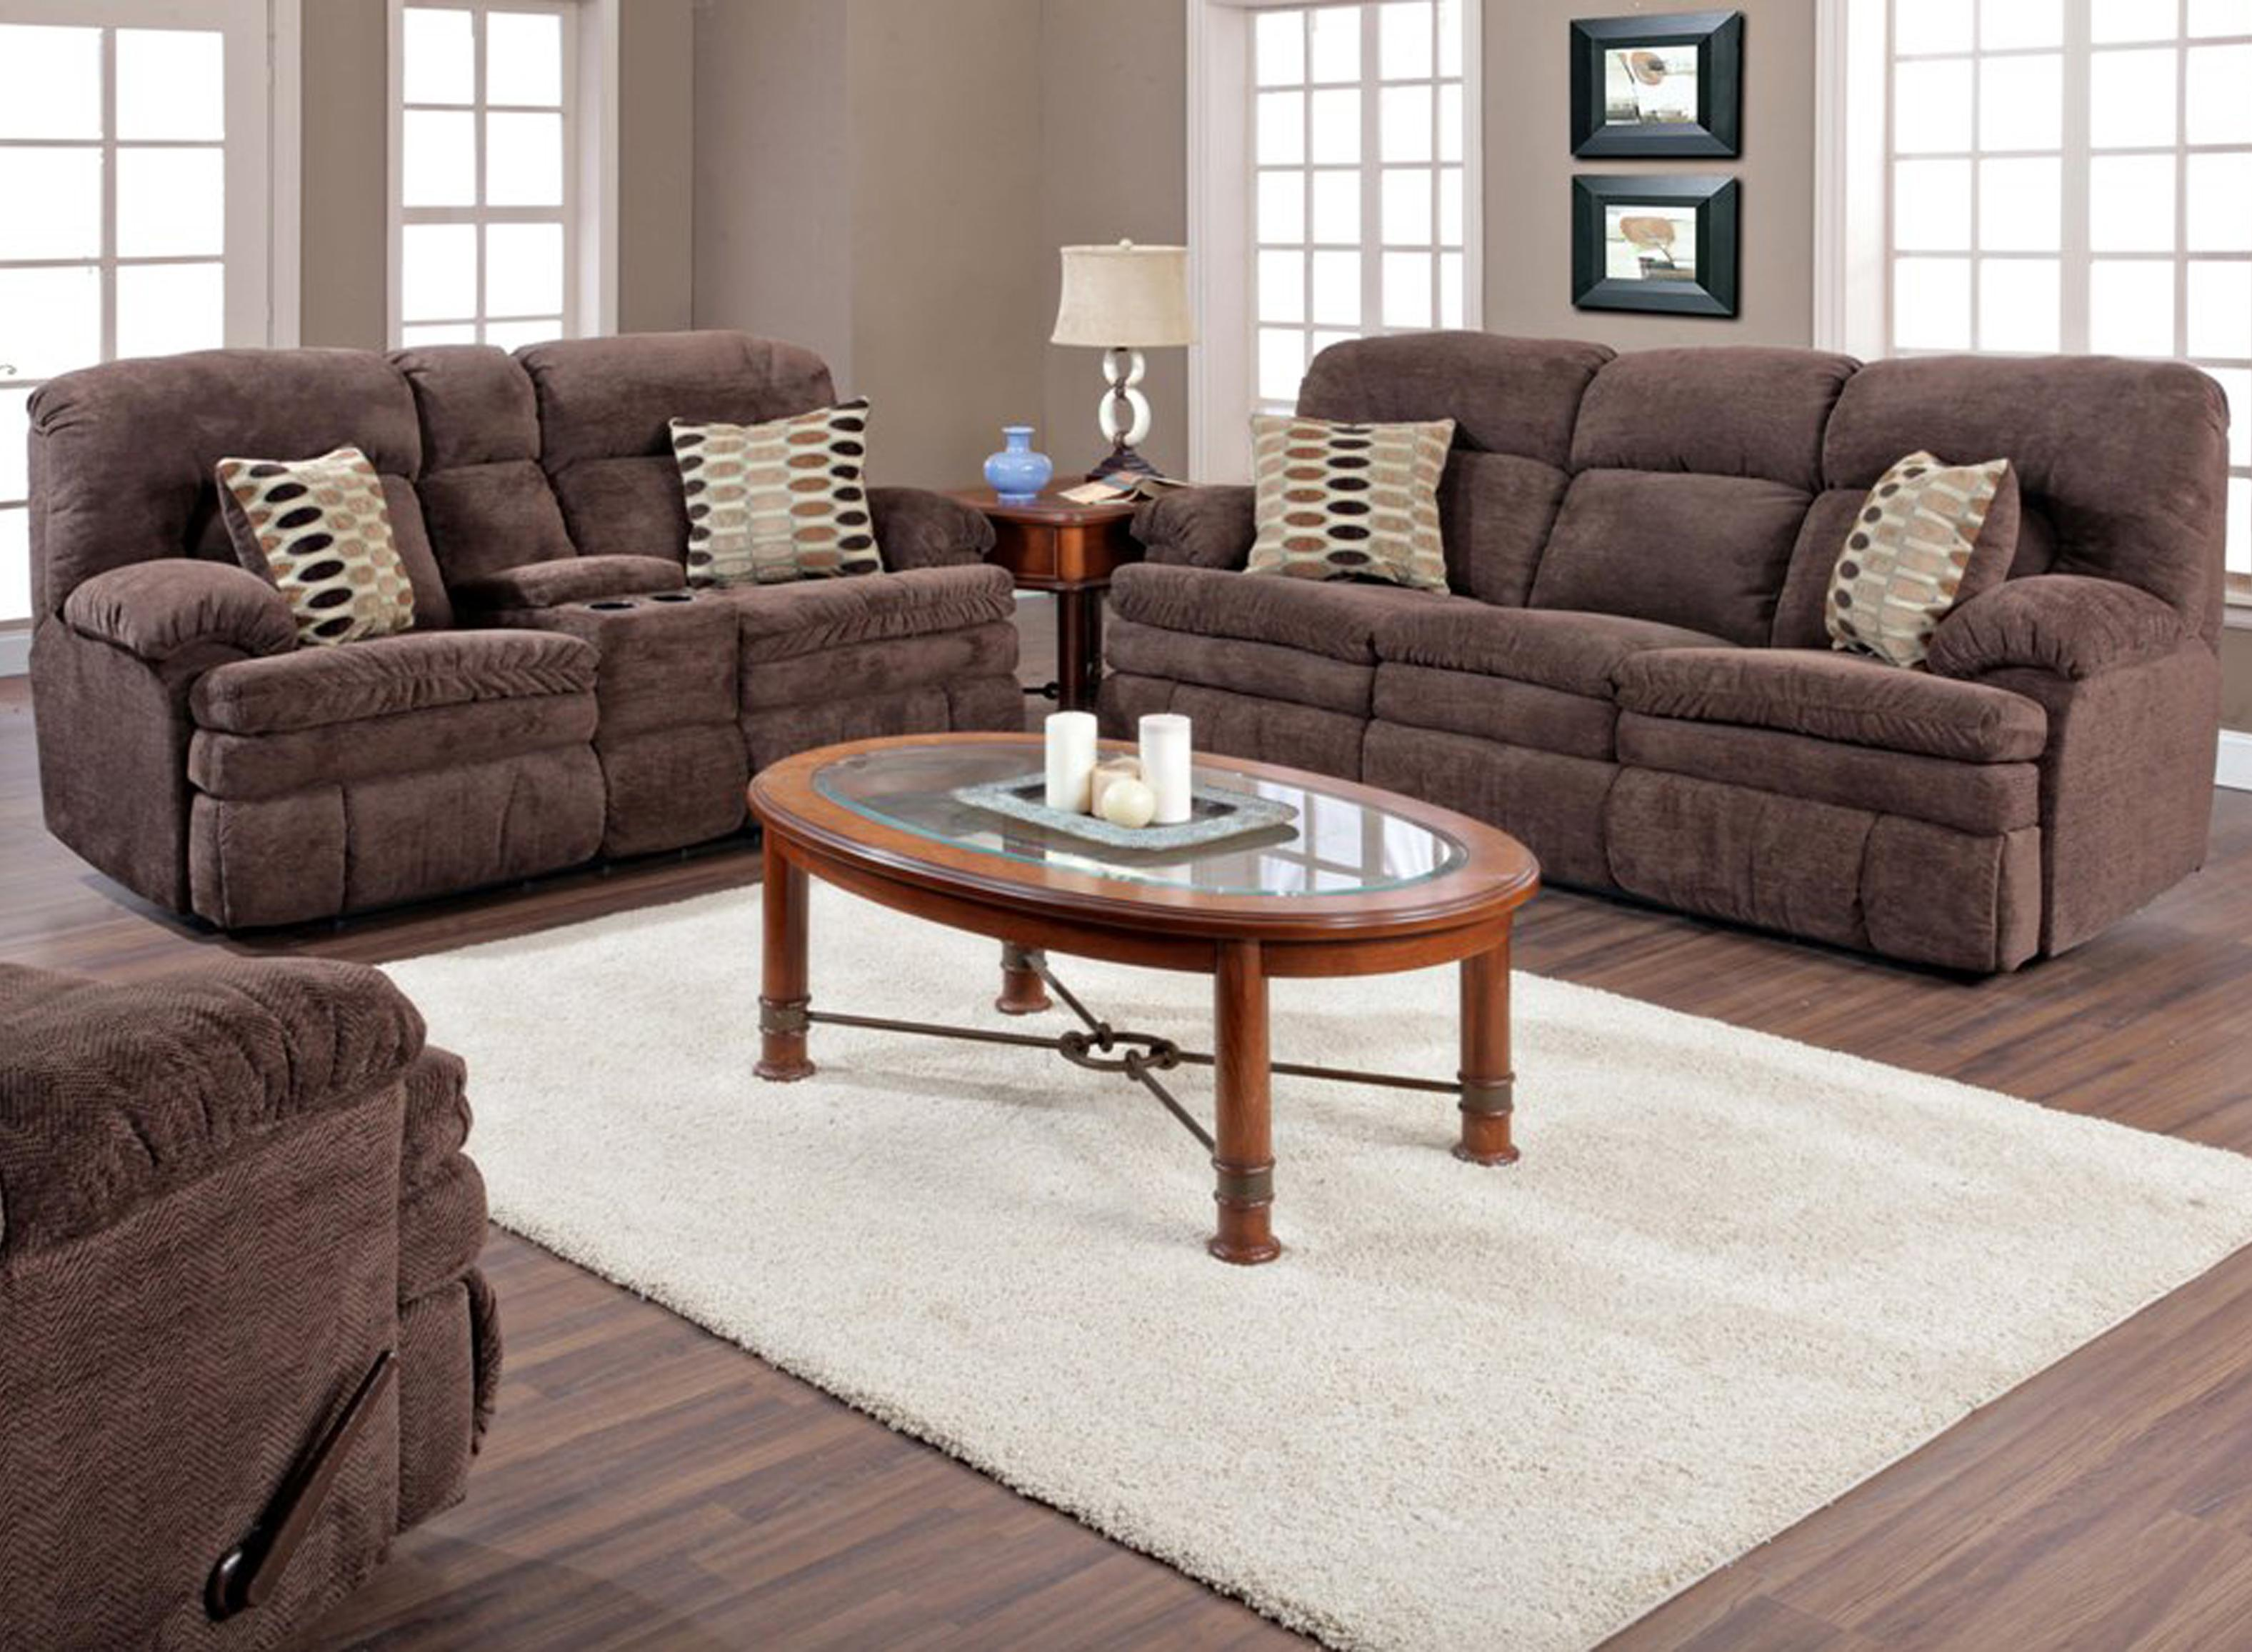 HomeStretch 103 Chocolate Series Double Reclining Sofa With Oversized Top  Seat Cushion | Bullard Furniture | Reclining Sofa Fayetteville, NC